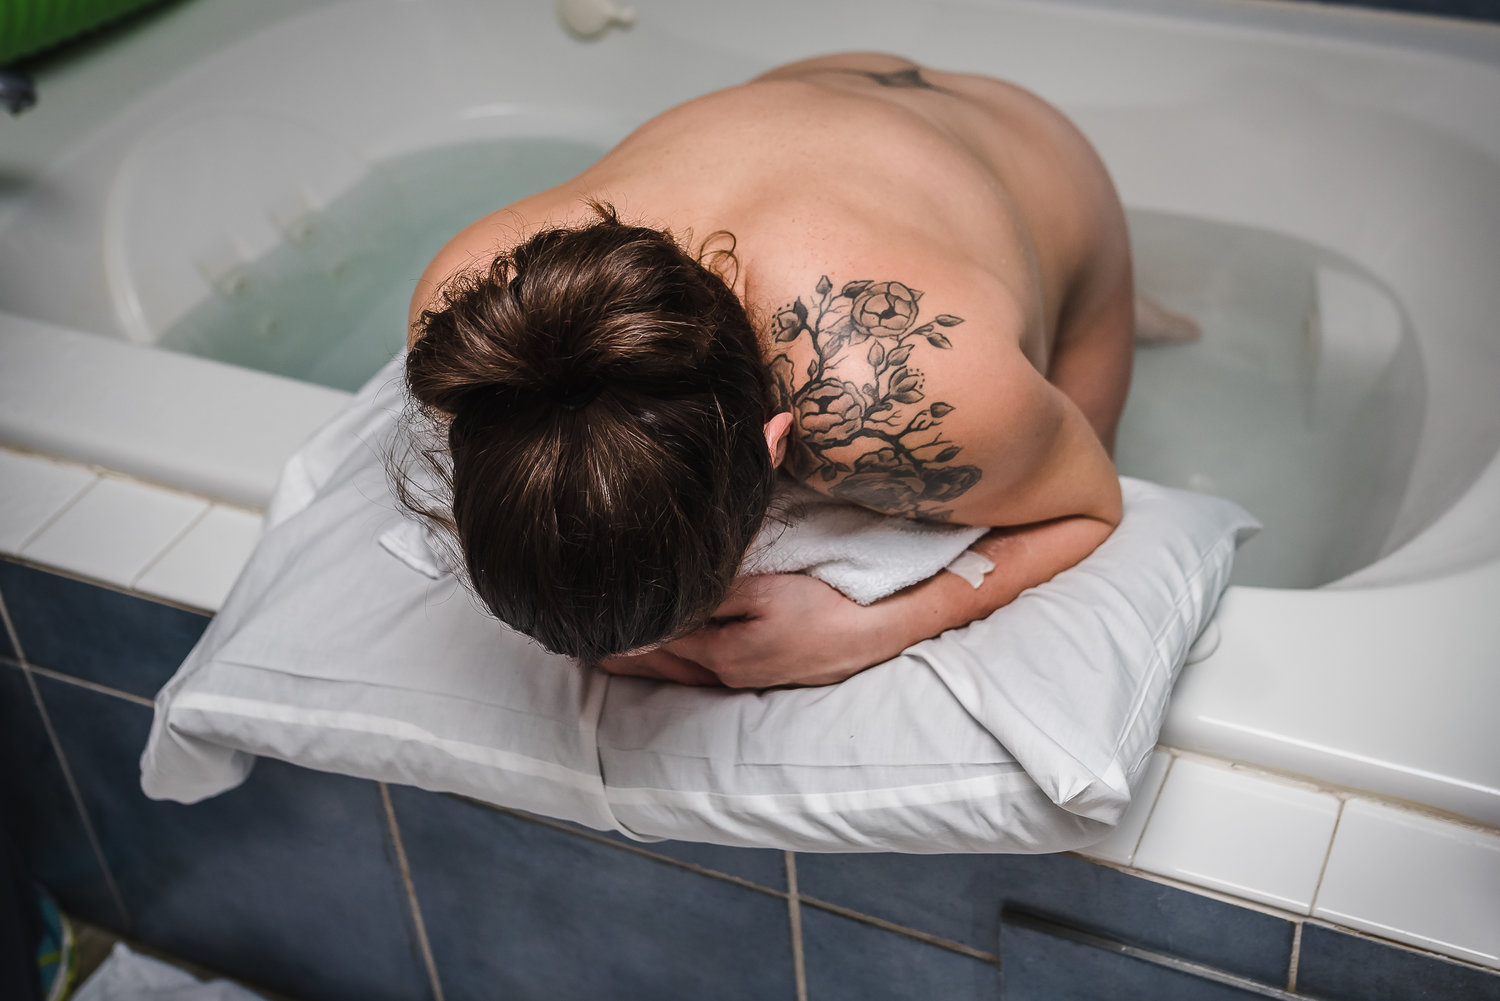 laboring in the tub midwife center birth photography